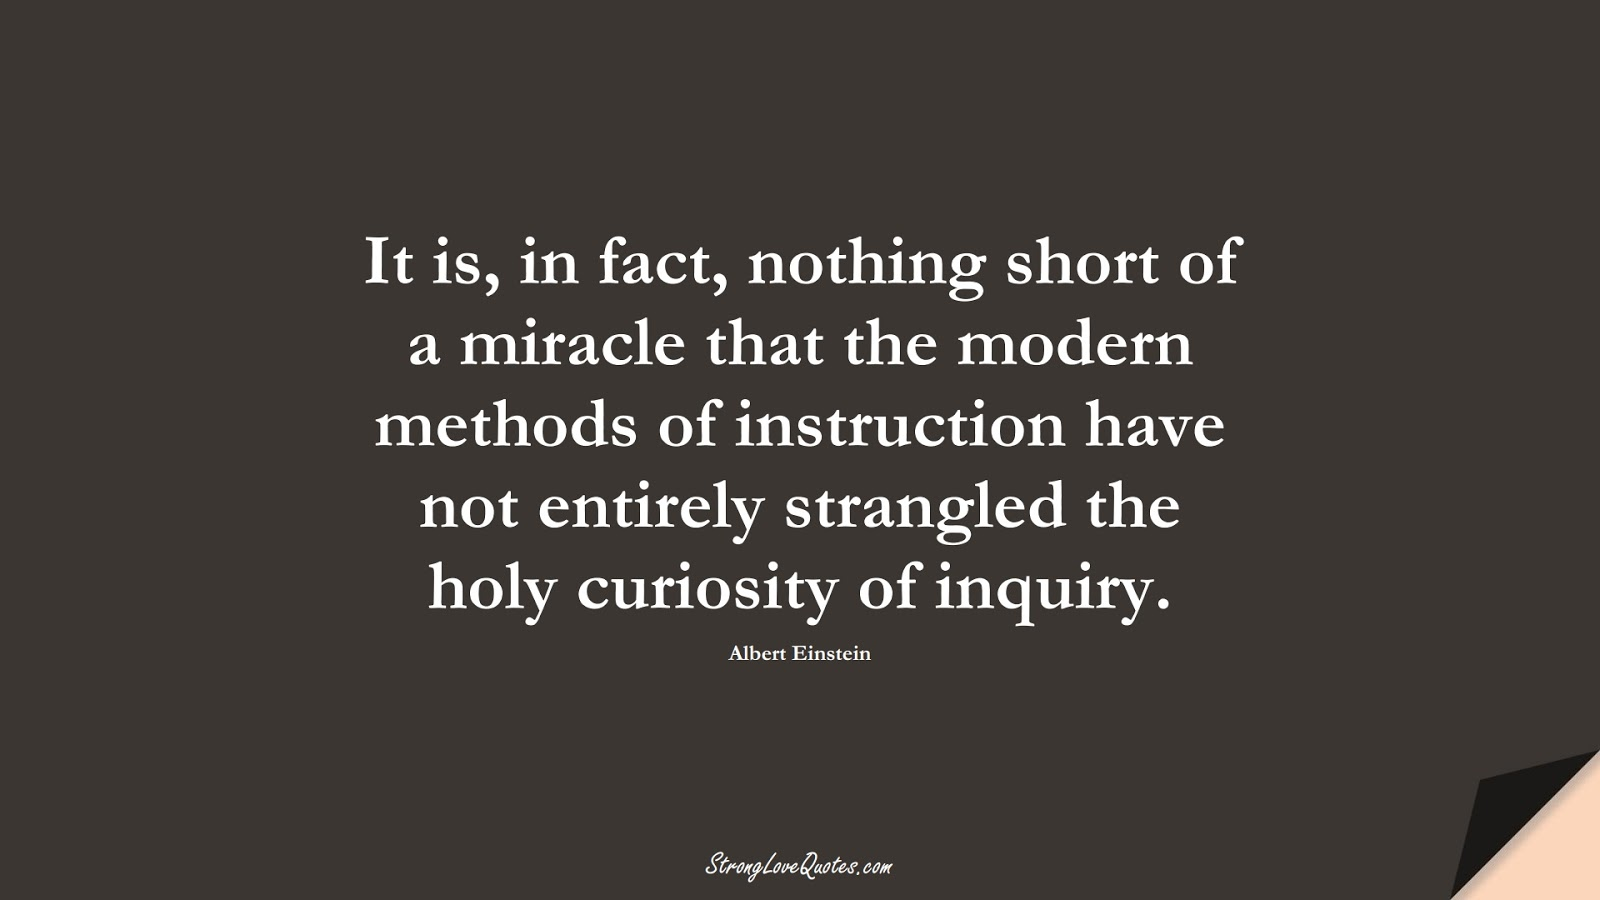 It is, in fact, nothing short of a miracle that the modern methods of instruction have not entirely strangled the holy curiosity of inquiry. (Albert Einstein);  #KnowledgeQuotes